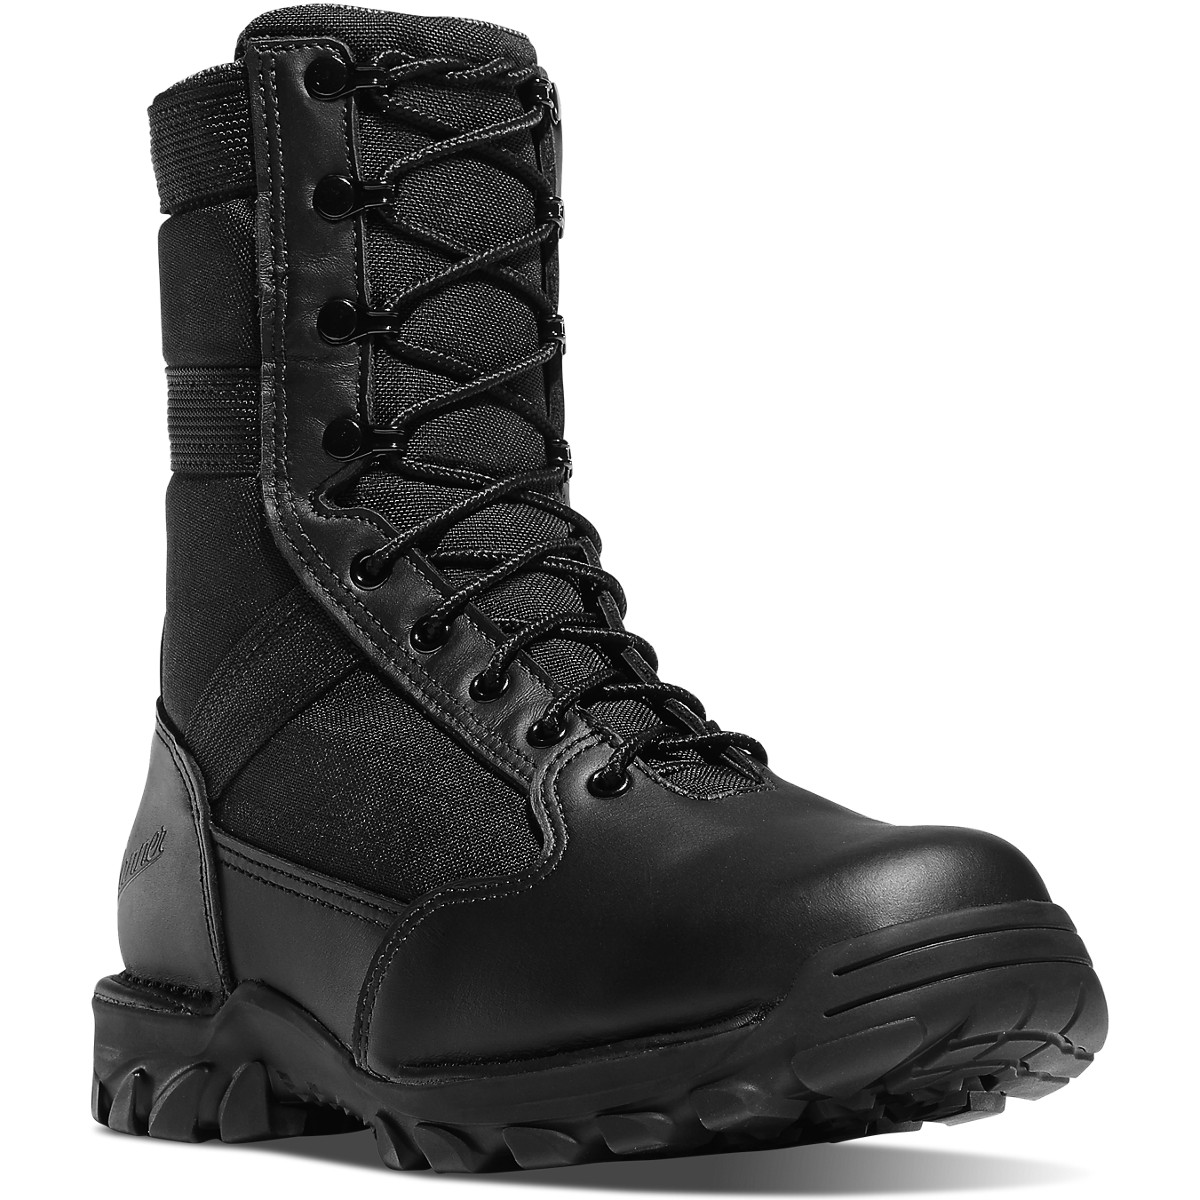 Danner Rivot TFX 8 Inch Waterproof GoreTex Tactical Boot 51520